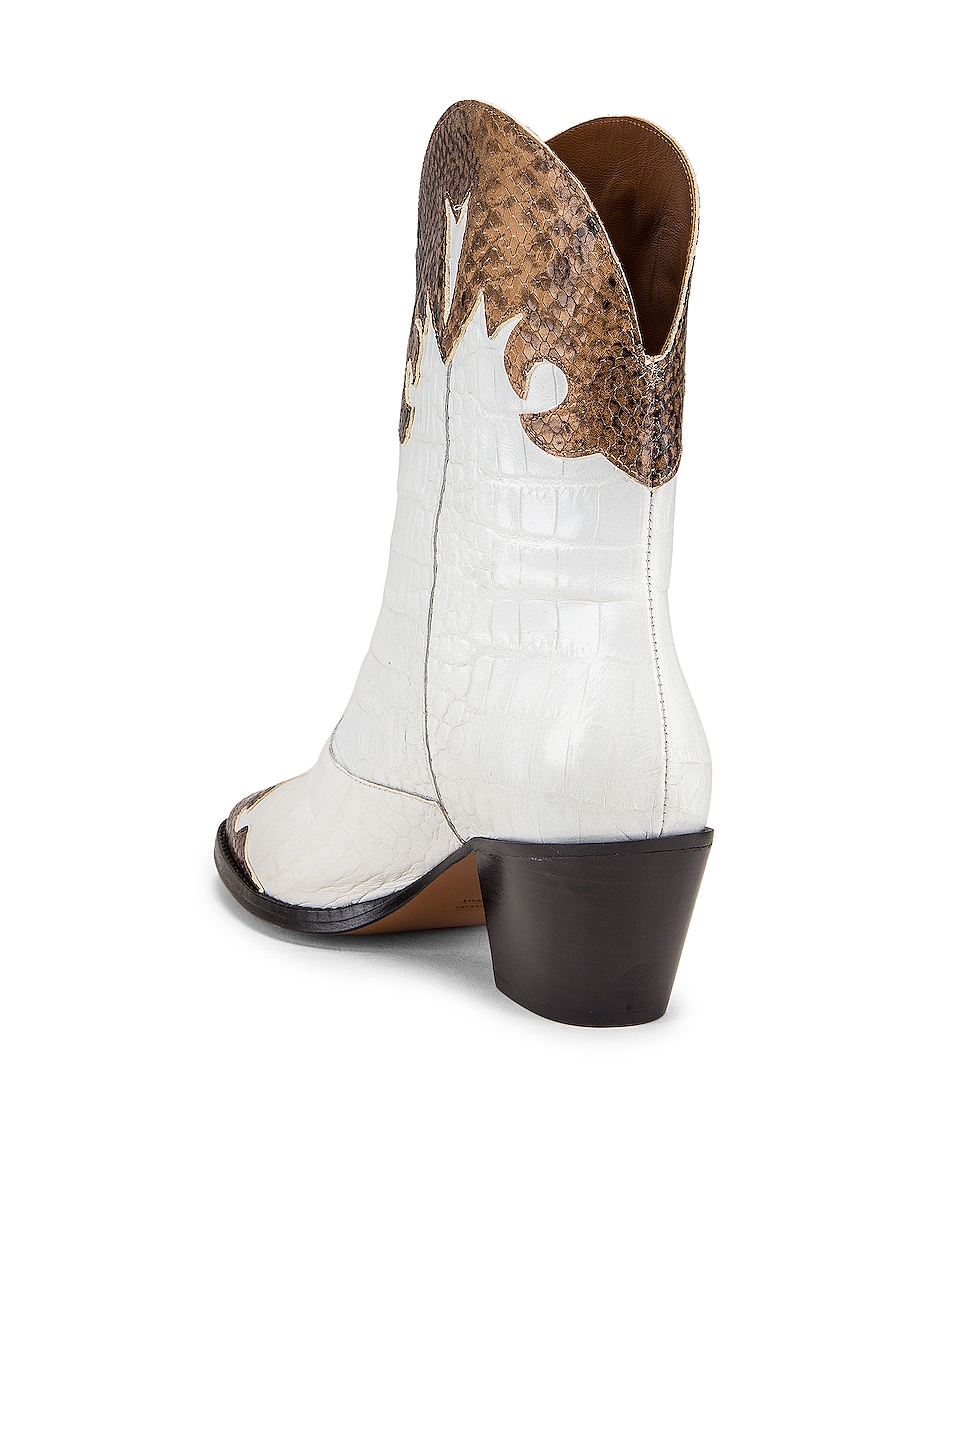 Image 3 of Paris Texas Python Moc Coco Texano Boot in Camel & White